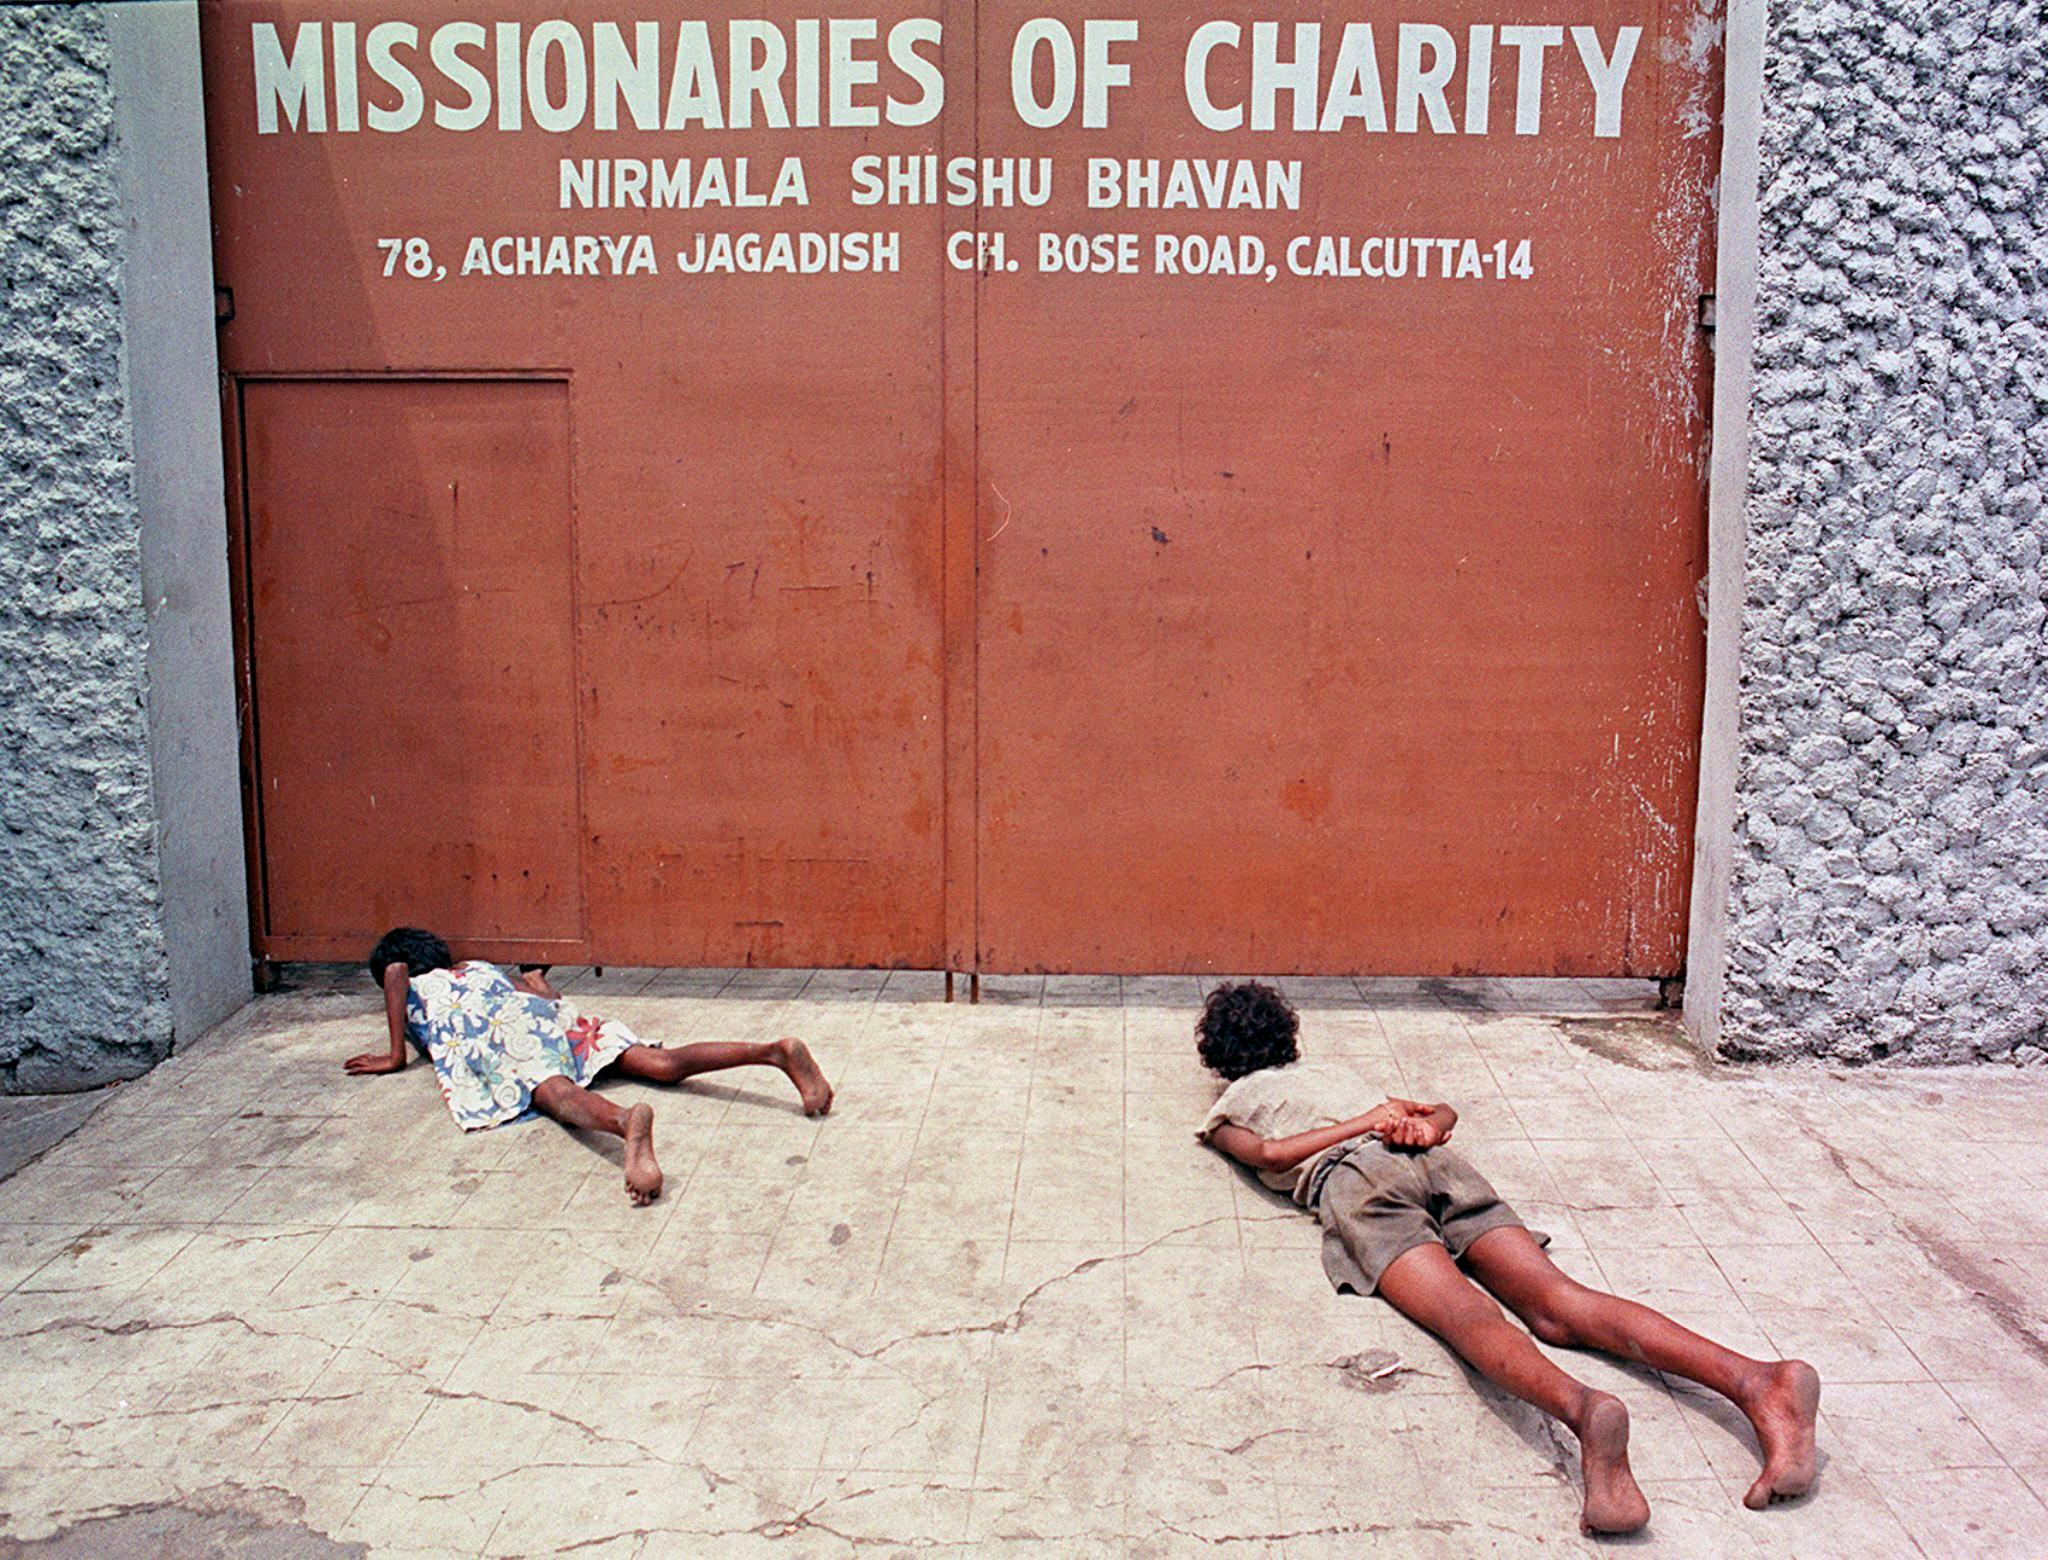 A young girl and a man crawl on the ground to peep underneath the gate to the Missionaries of Charity.